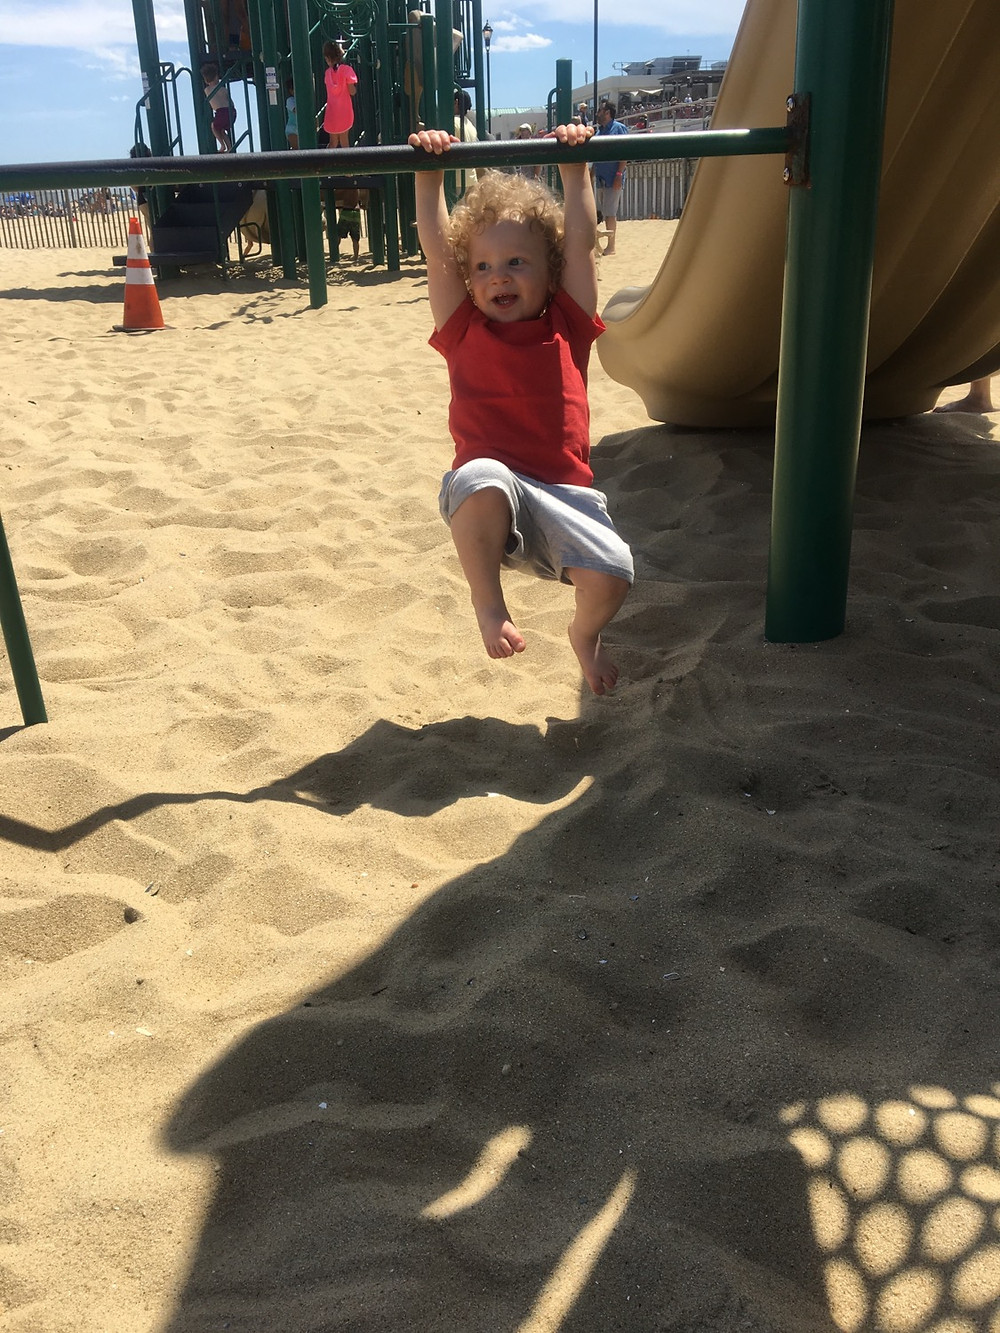 Little boy swinging from the bars on a playground on the beach